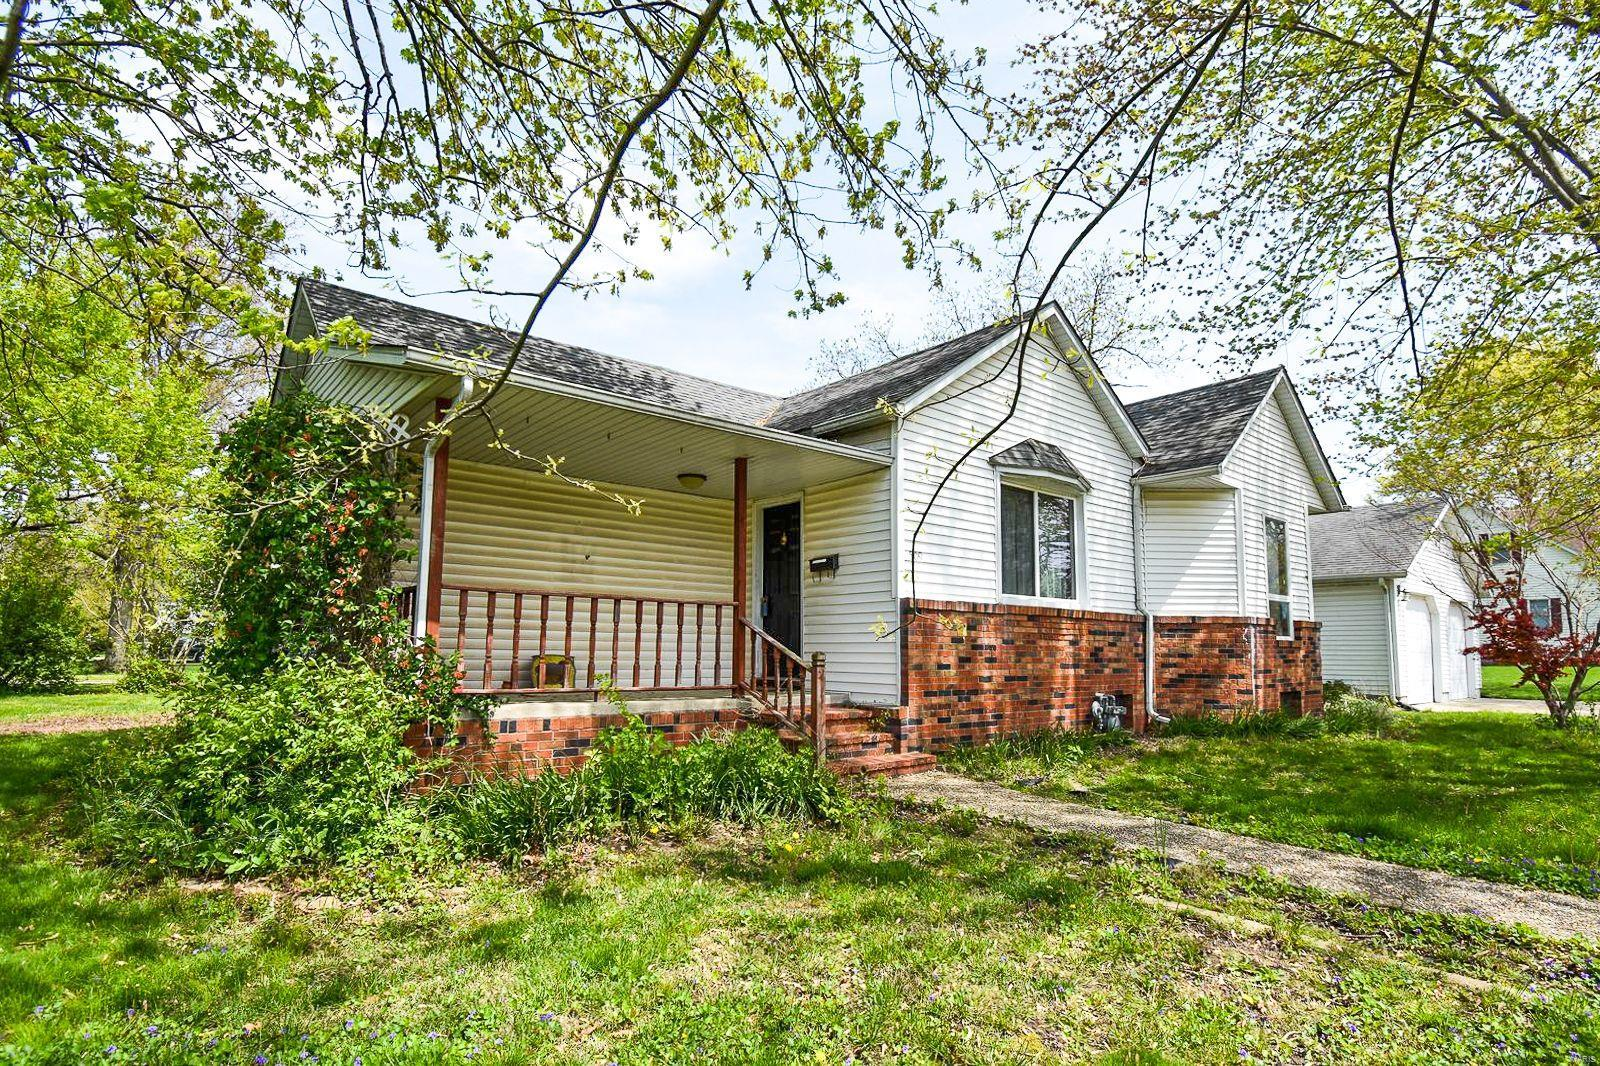 509 W 1st Street S Property Photo - Mount Olive, IL real estate listing